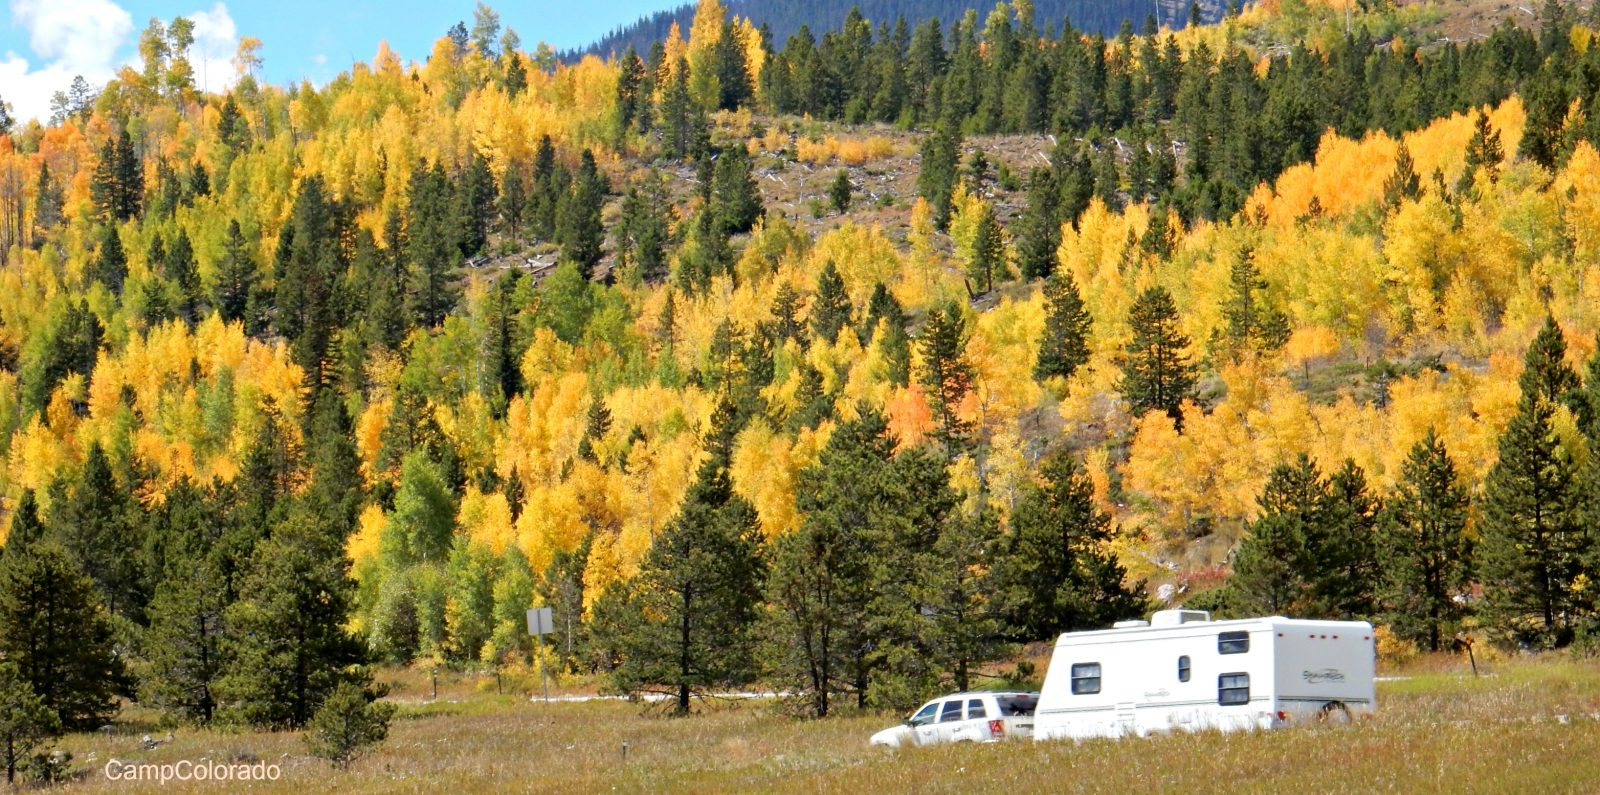 Rving and Aspen leaves in Colorado